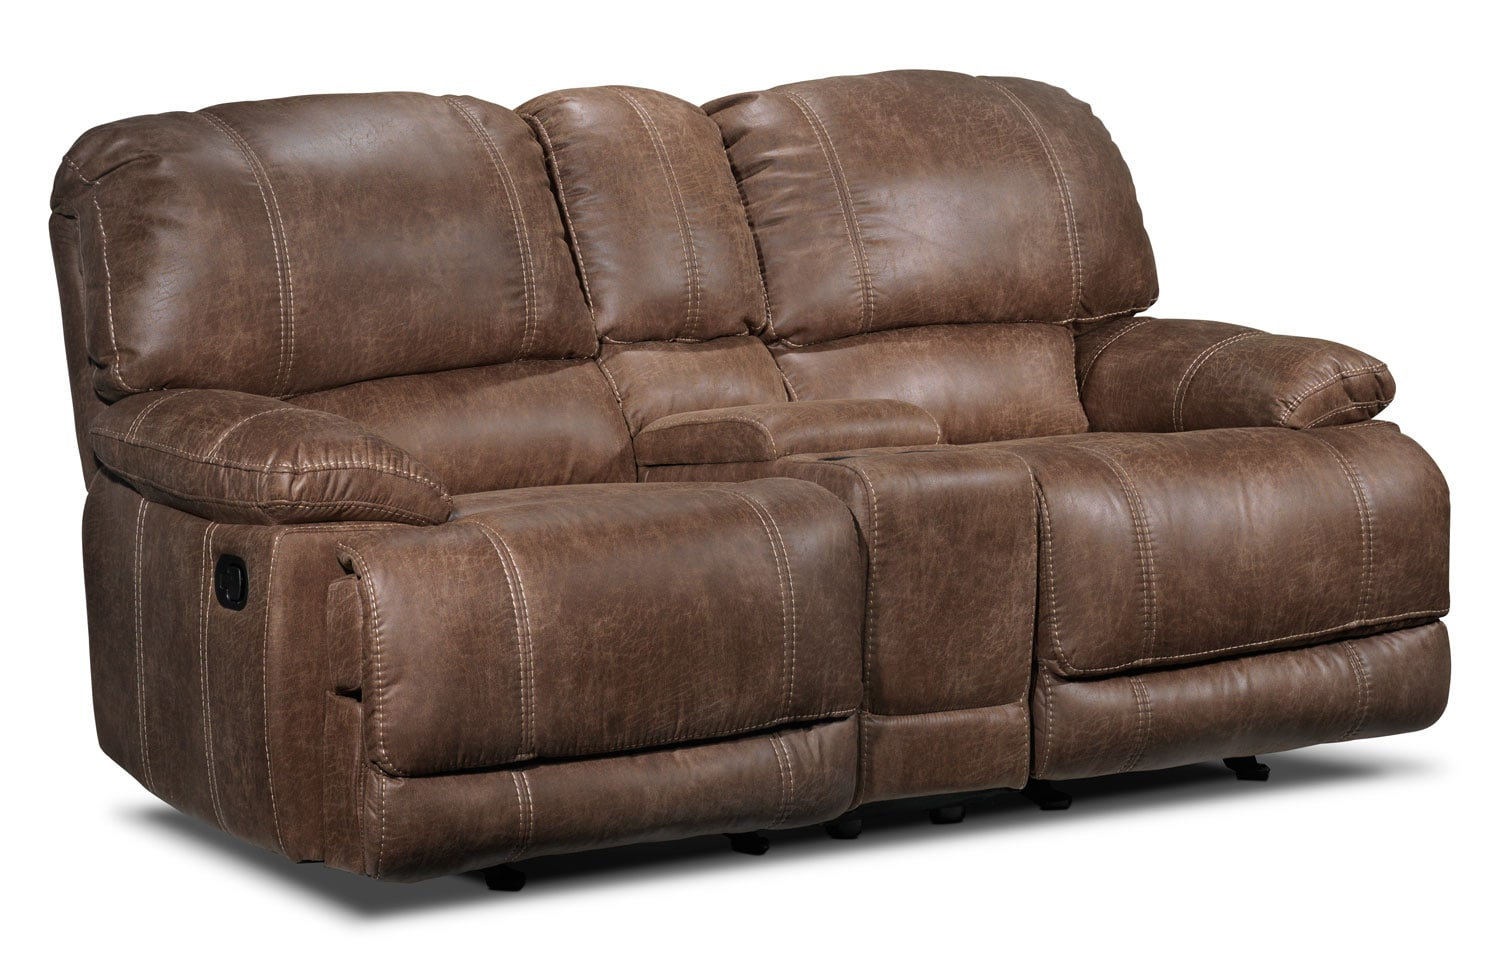 Durango Reclining Loveseat W Console Saddle Brown Leon 39 S